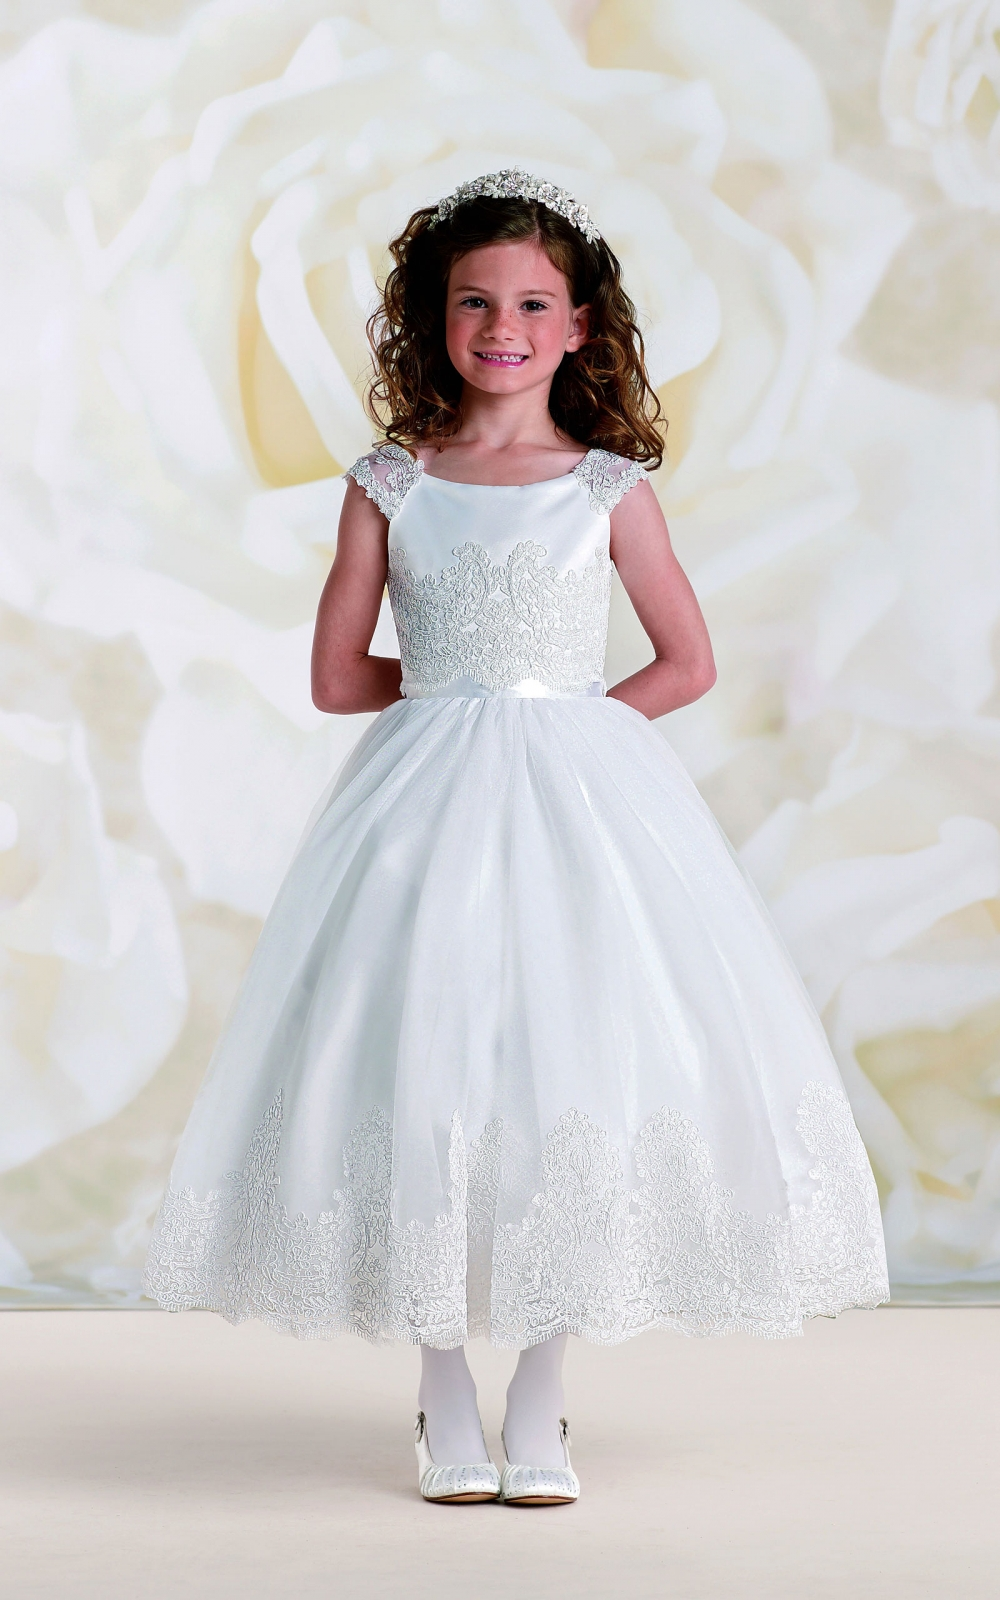 dda2558fa37 JC 19328 - Joan Calabrese Style 19328- Satin and Tulle Off the Shoulder  Dress - All First Communion Dresses - Flower Girl Dresses - Flower Girl  Dress For ...